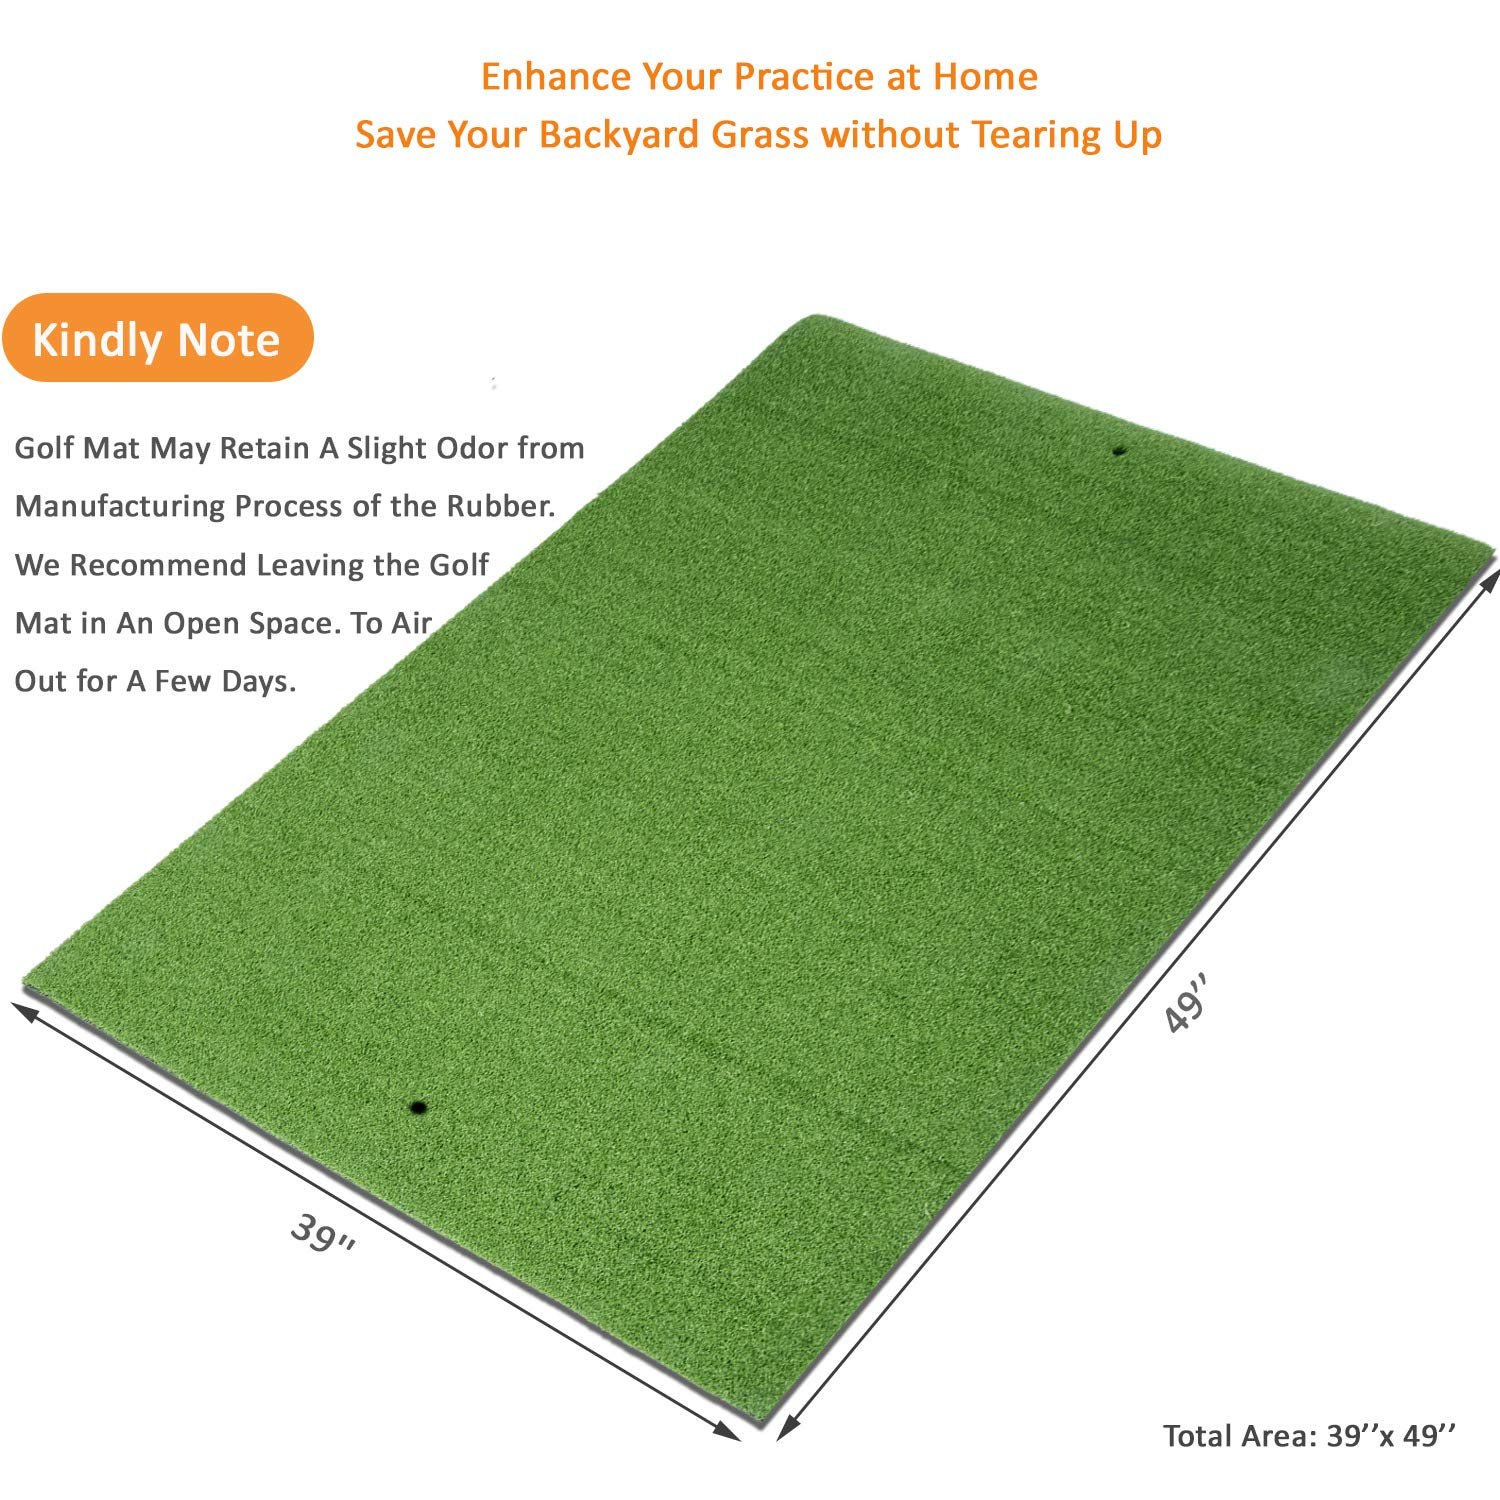 Sky Golf Mat Residential Practice Hitting Grass Mat with Removable Rubber Tee Holder, Home Backyard Garage Outdoor Practice